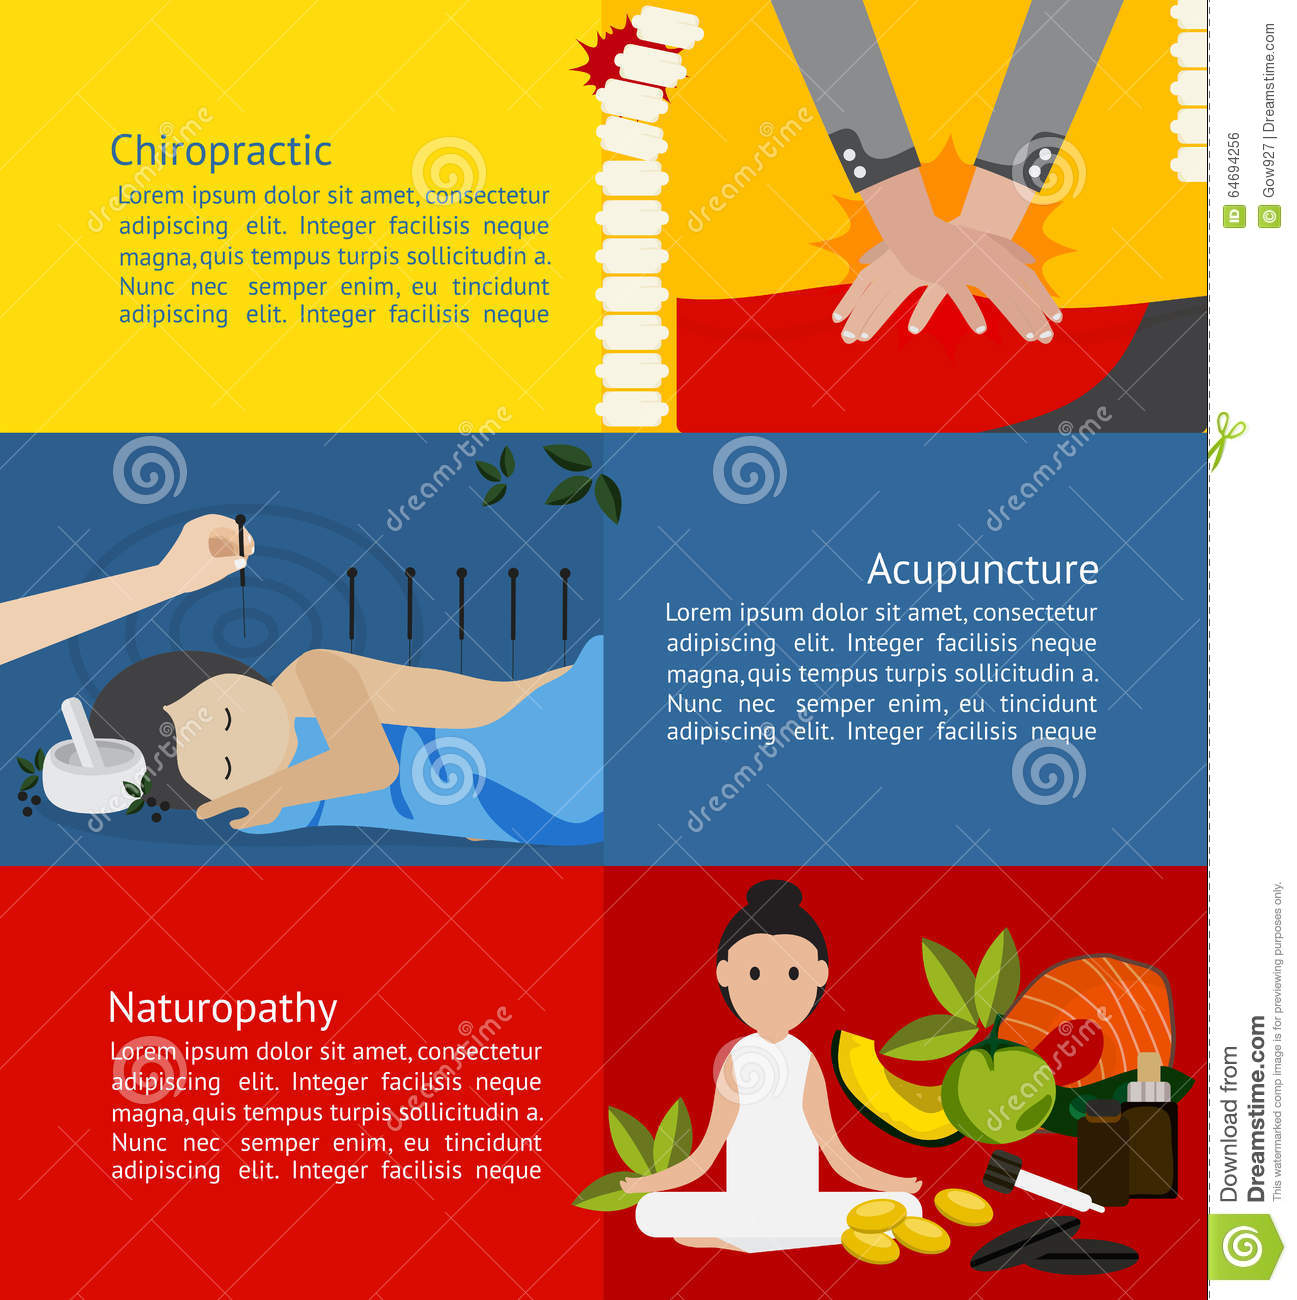 acupuncture as an alternative medicine in Eligible guidelines published in english language by non-profit agencies on  herbal medicine, acupuncture, or spinal manipulation for adults.